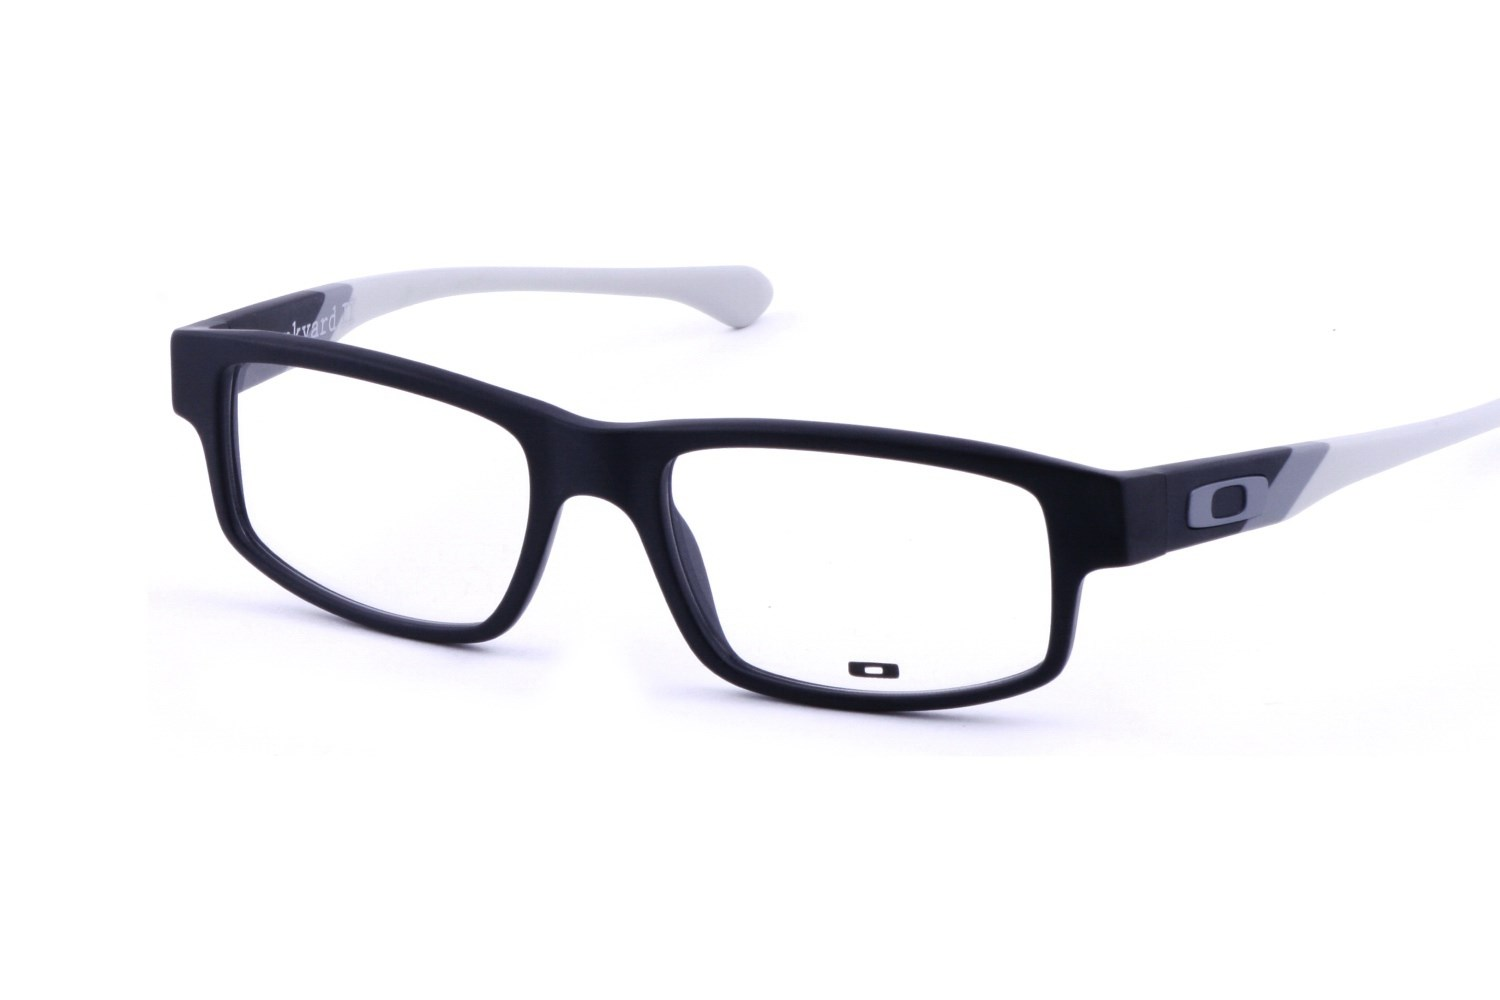 Oakley Junkyard II (53) Prescription Eyeglasses ...